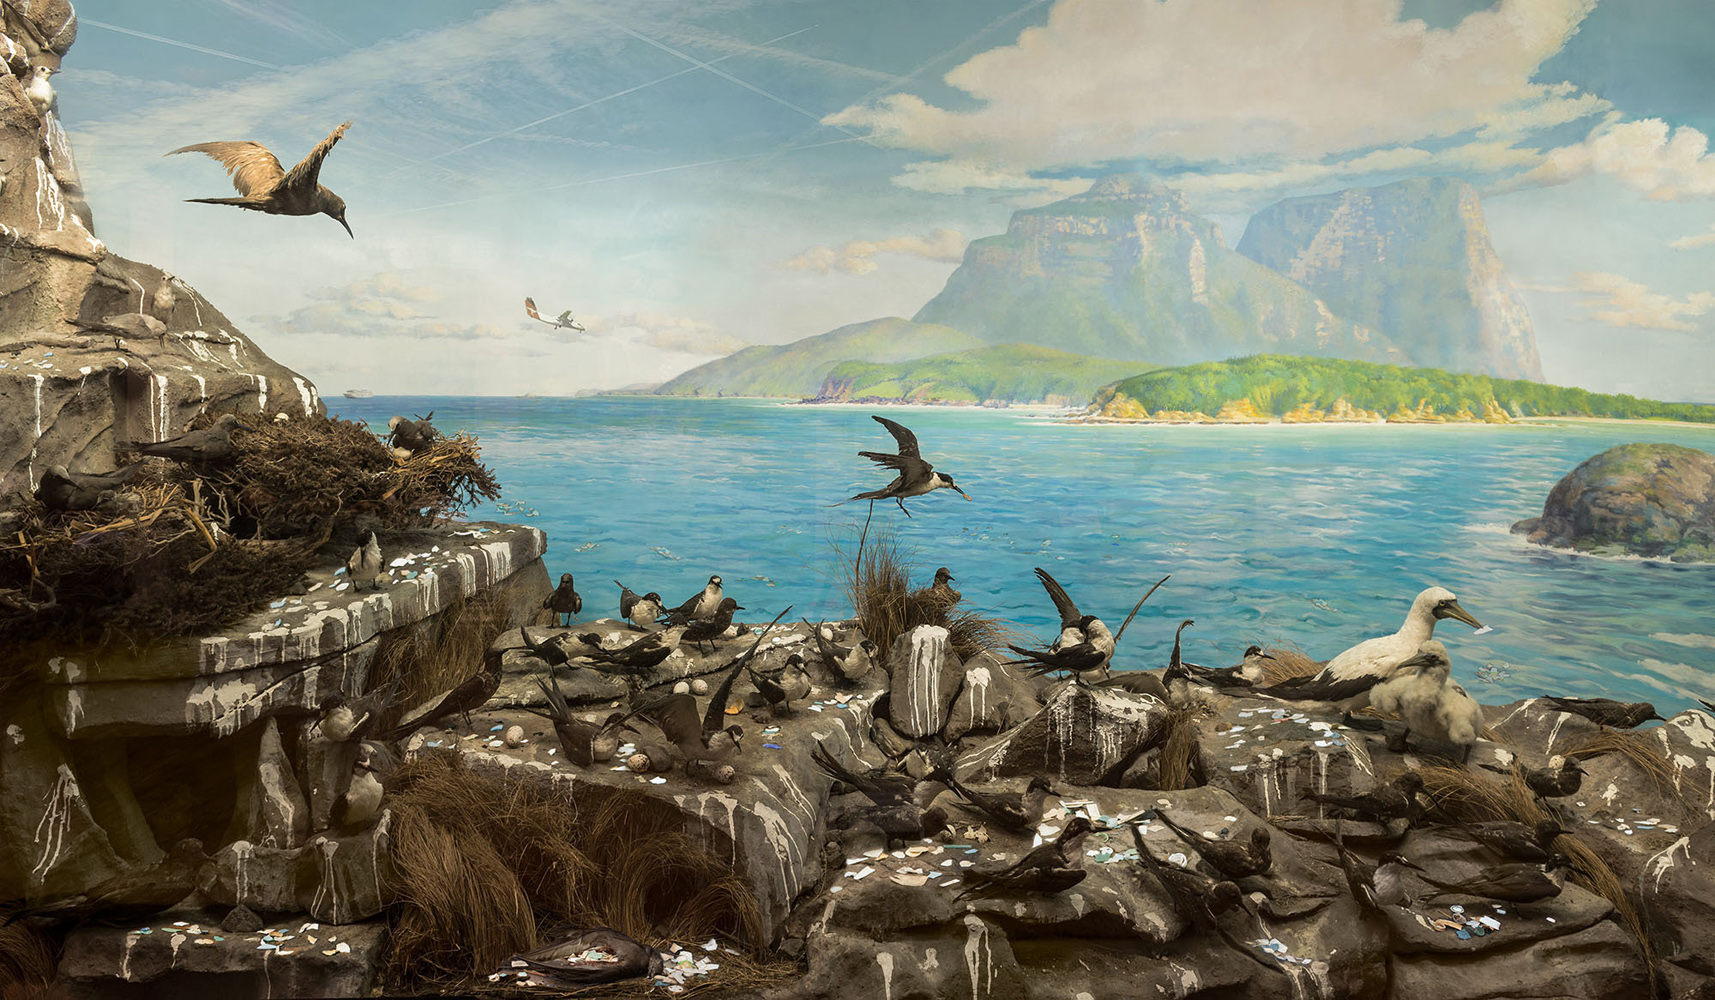 ANNE ZAHALKA   Sea Bird Colony, Admiralty Rocks looking to Mt Gower with calm seas at, Lord Howe Island  2019 Archival pigment ink on rag paper 80cm x 135cm Edition of 6  Source: Australian Museum